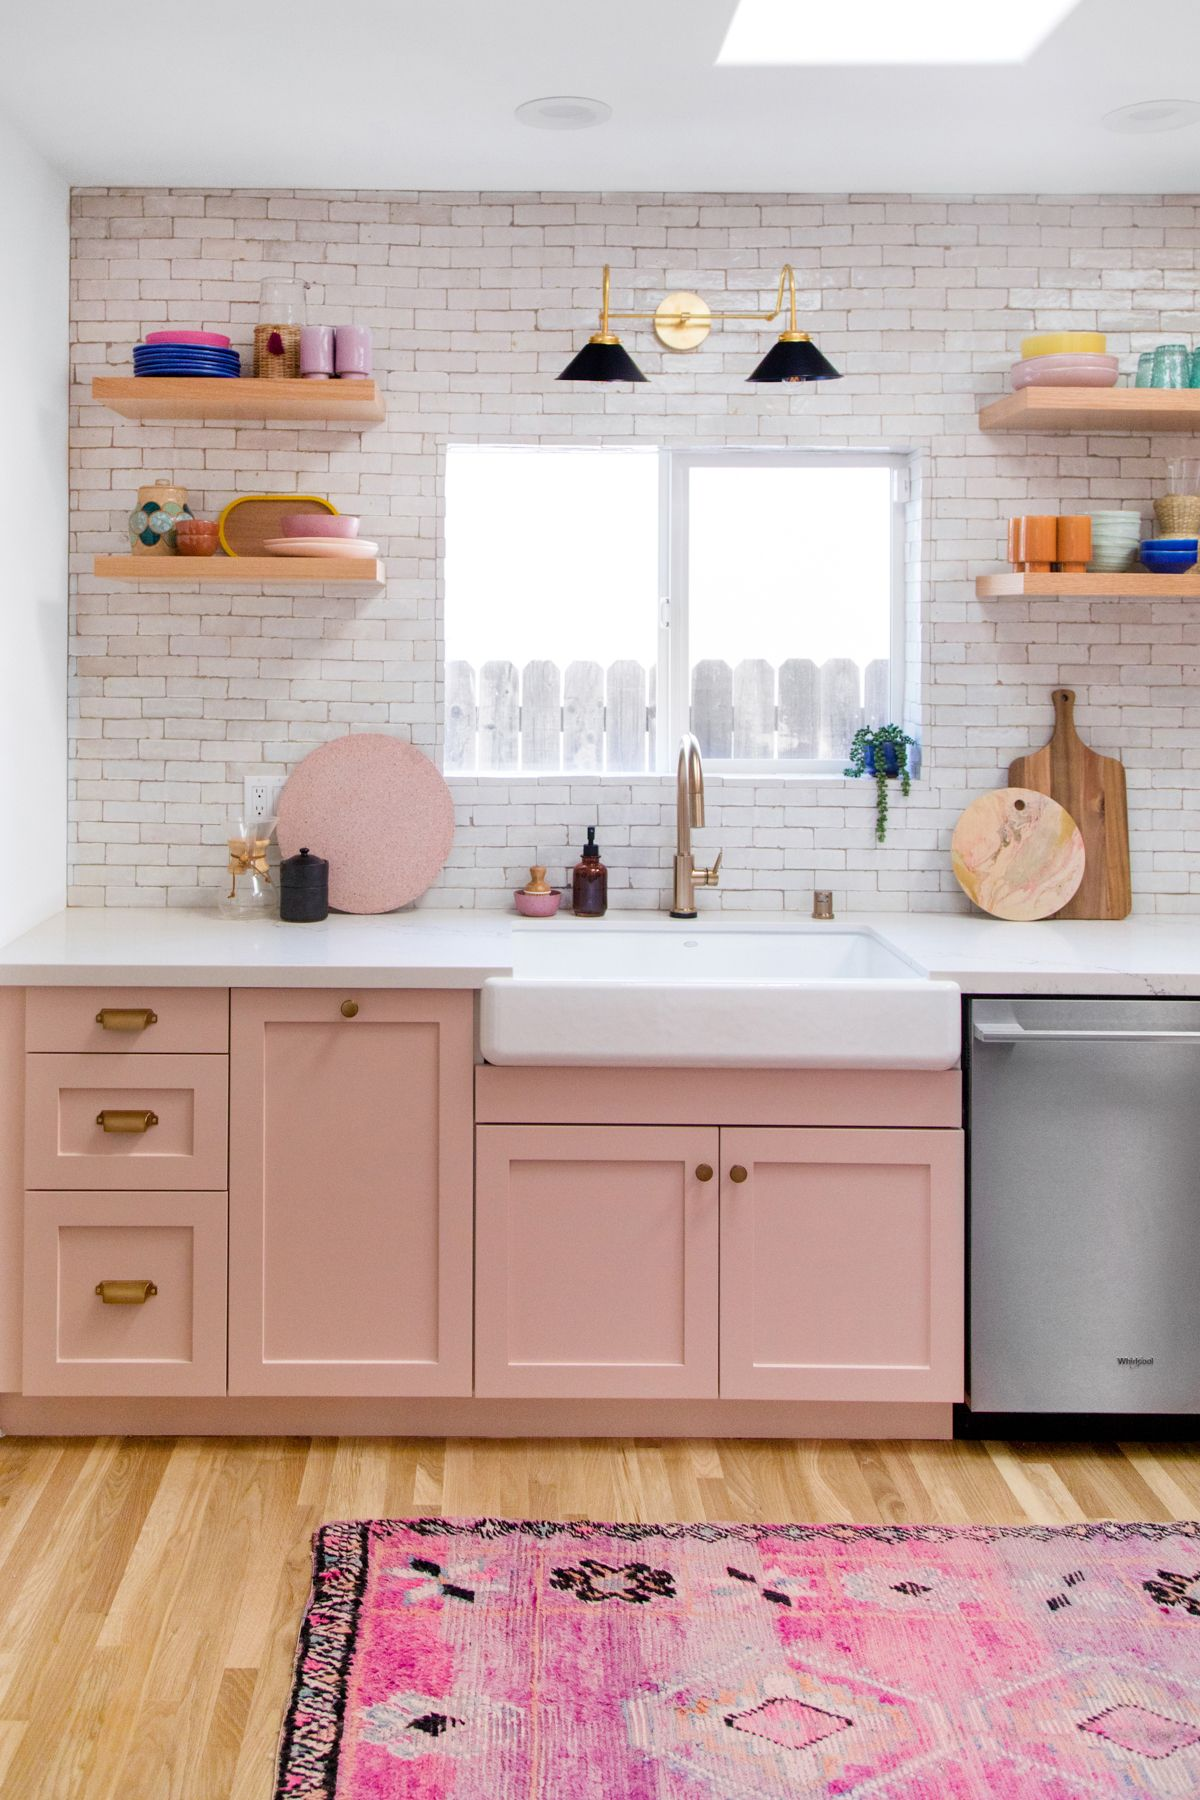 kitchen, wooden floor, white subway wall tiles, white top, pink cabinet, wooden floating shelves, white sink